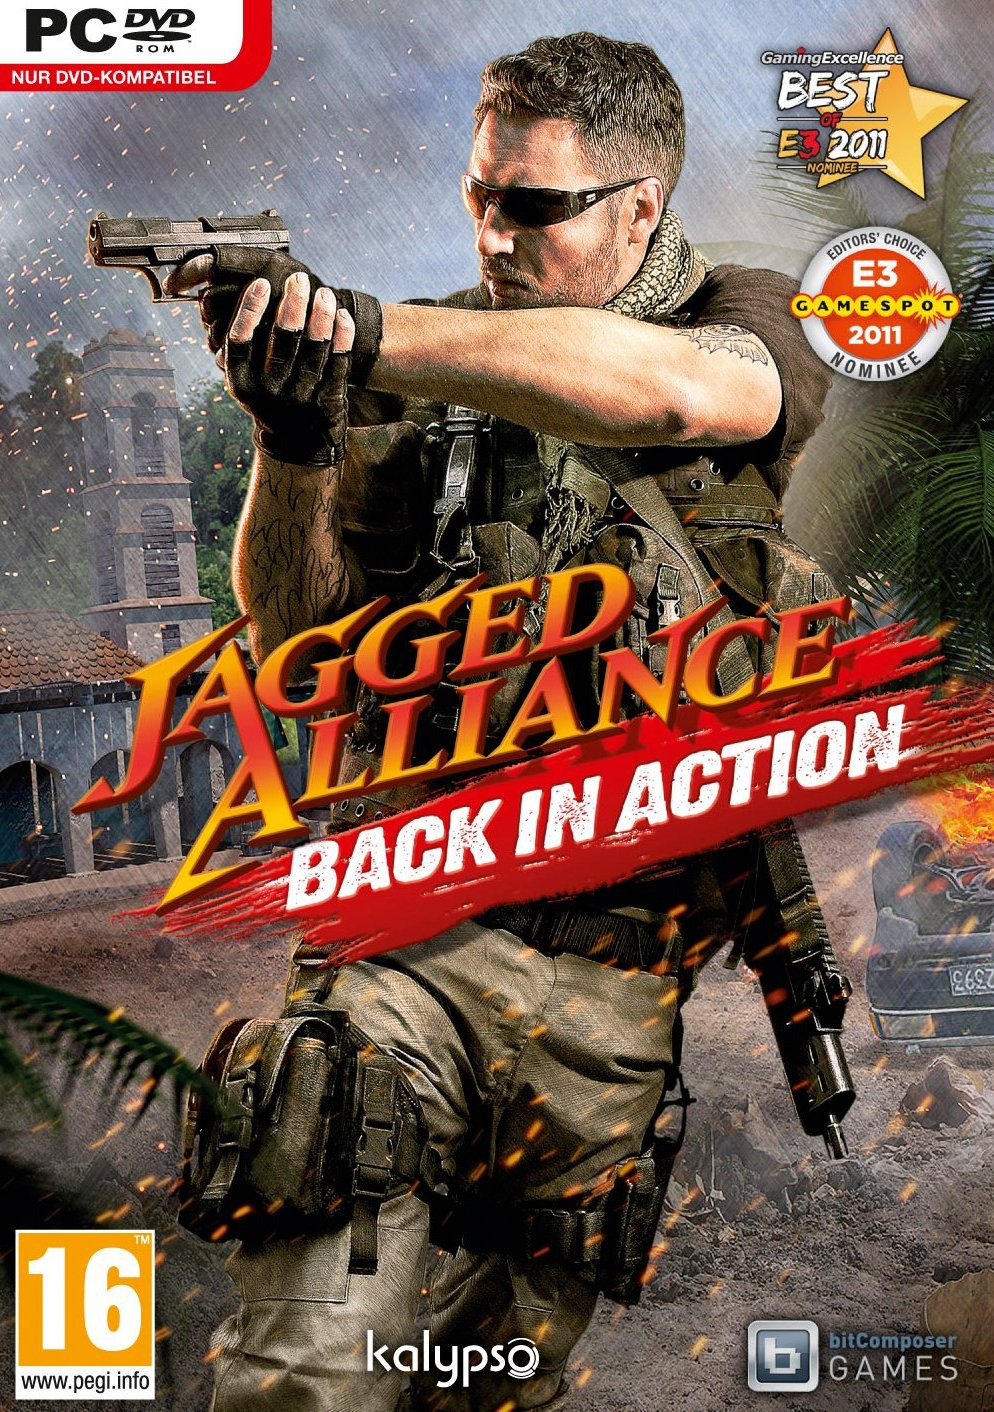 Jagged Alliance Back in Action v1.13b Update incl Point Blank DLC [MULTI]